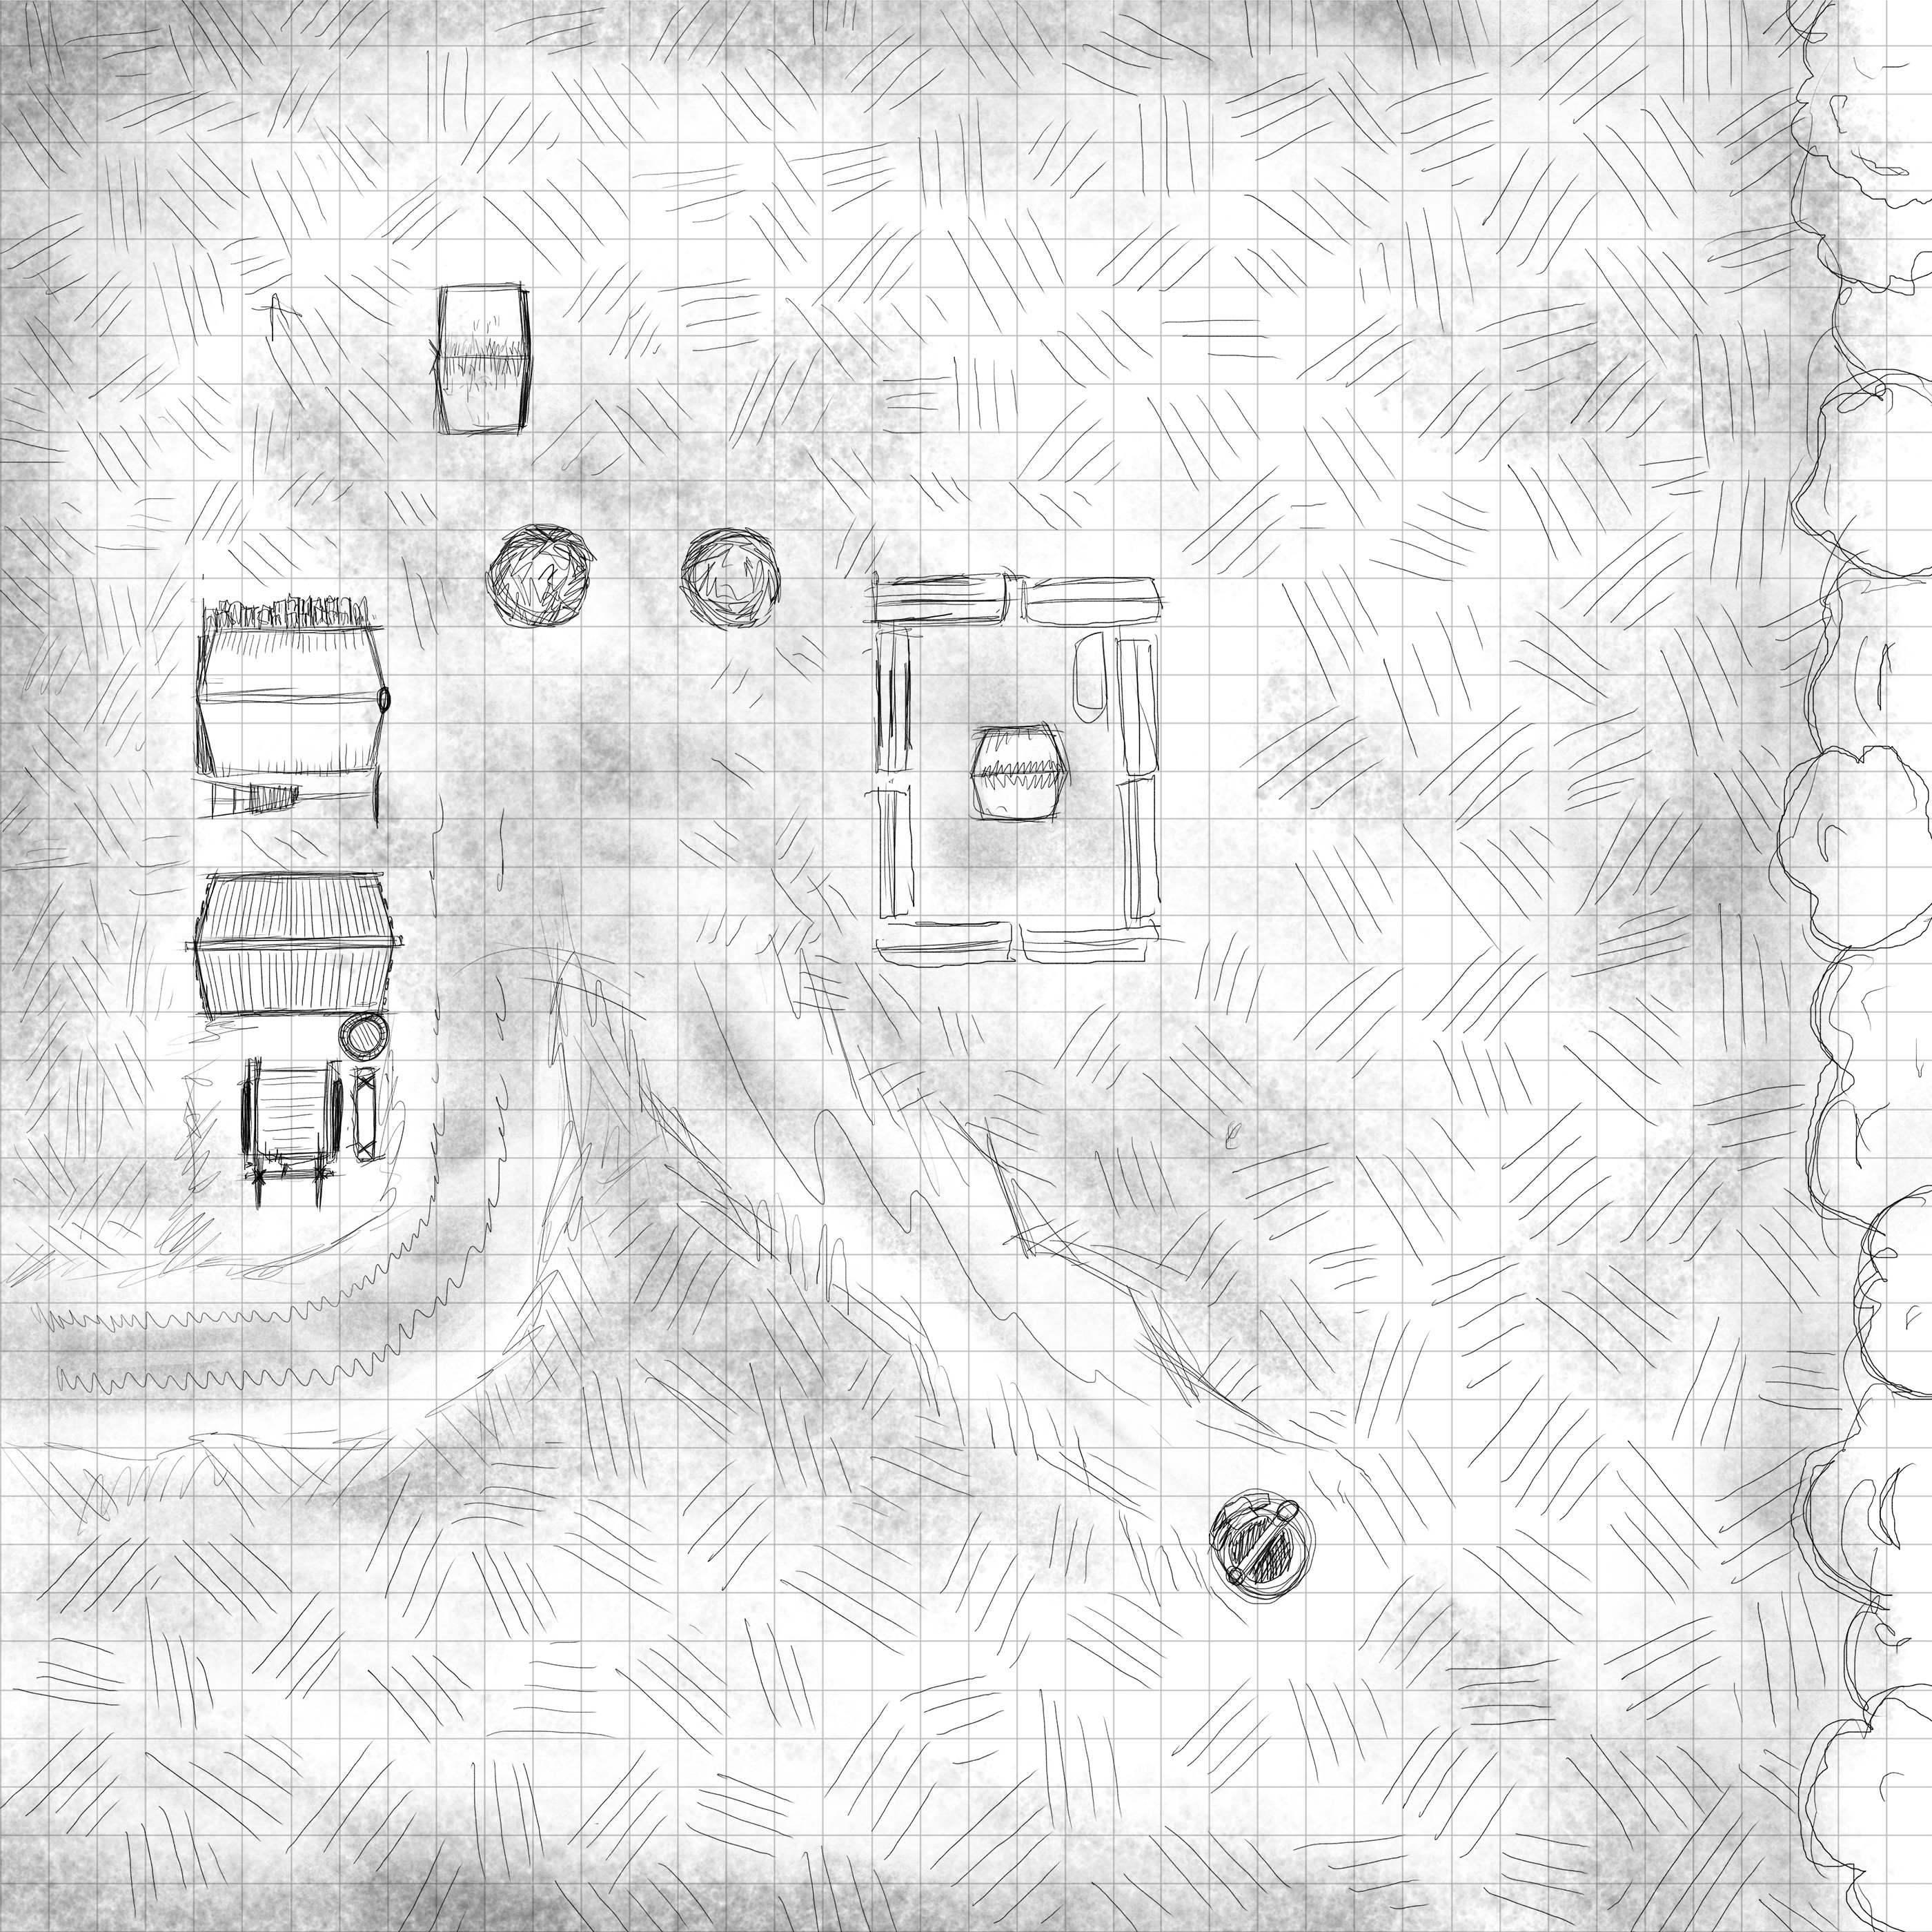 Initial Sketch for the farm based off a tabletop display